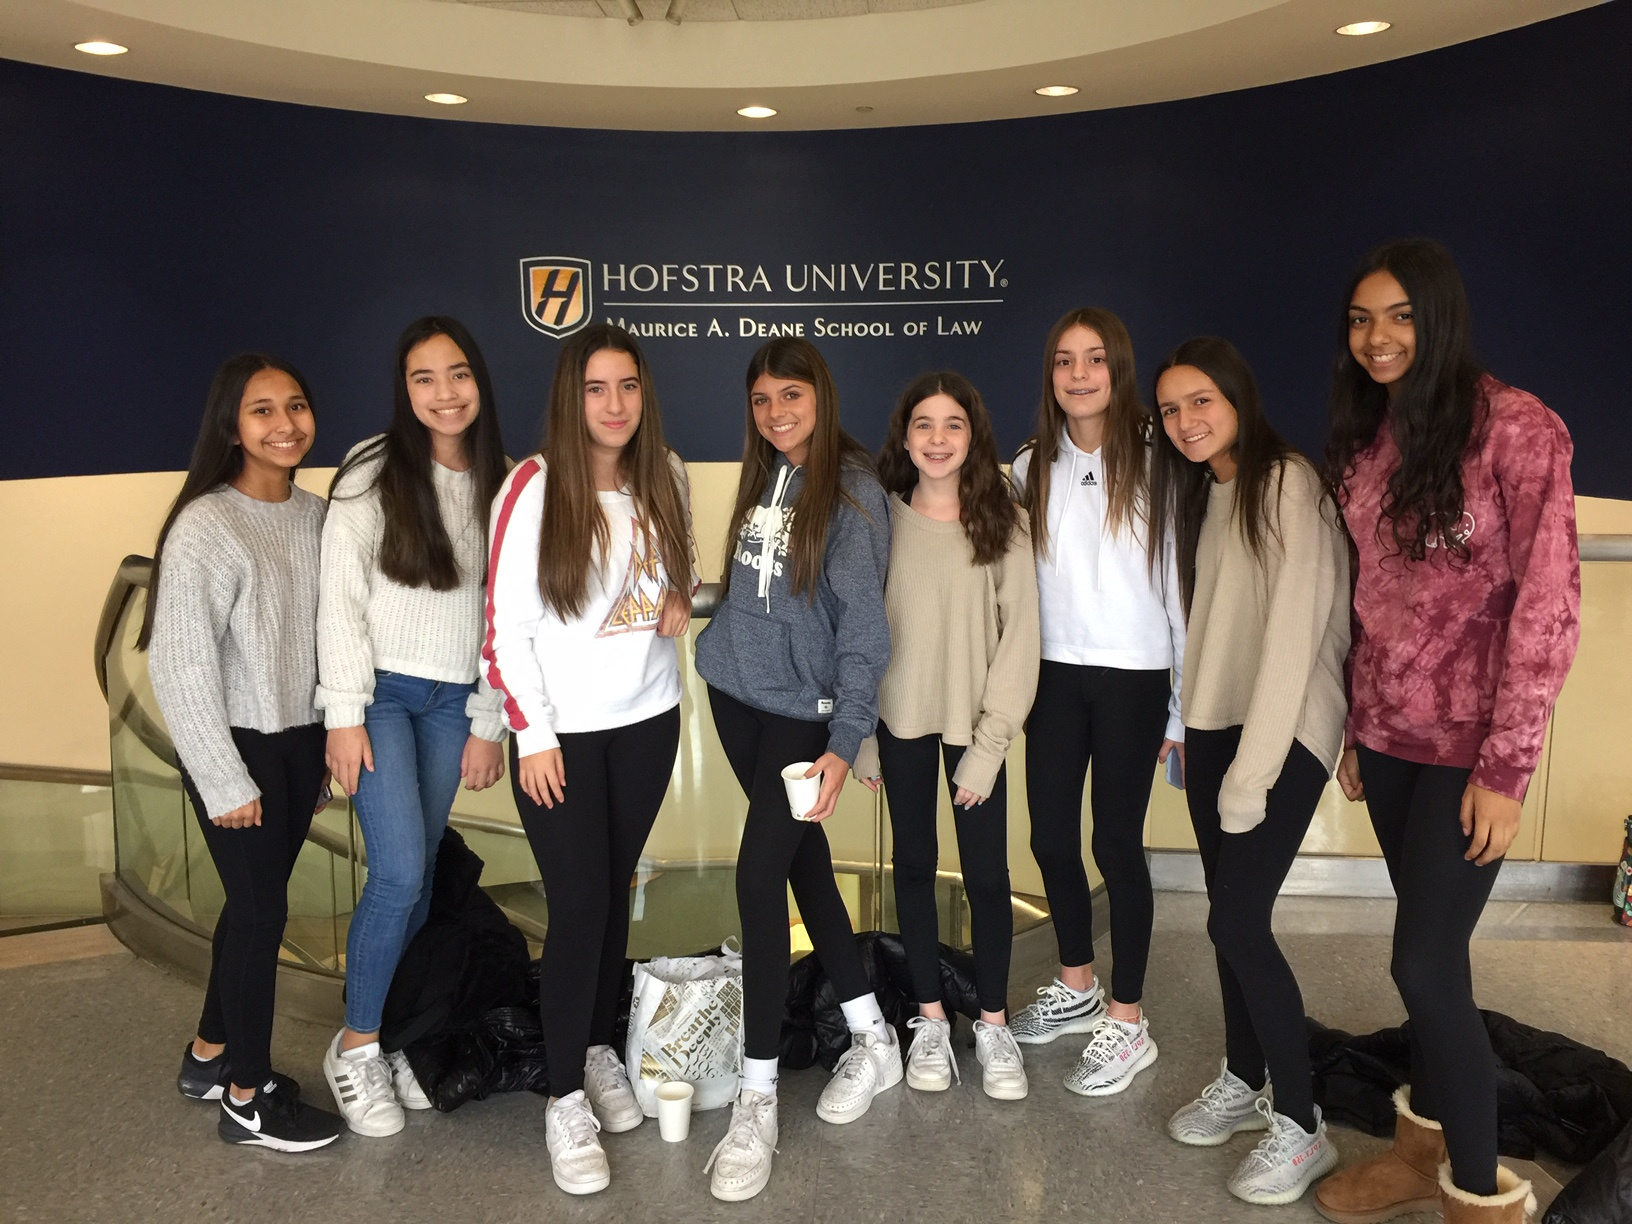 Candlewood NJHS Participates In Trial Technique Program At Hofstra School Of Law